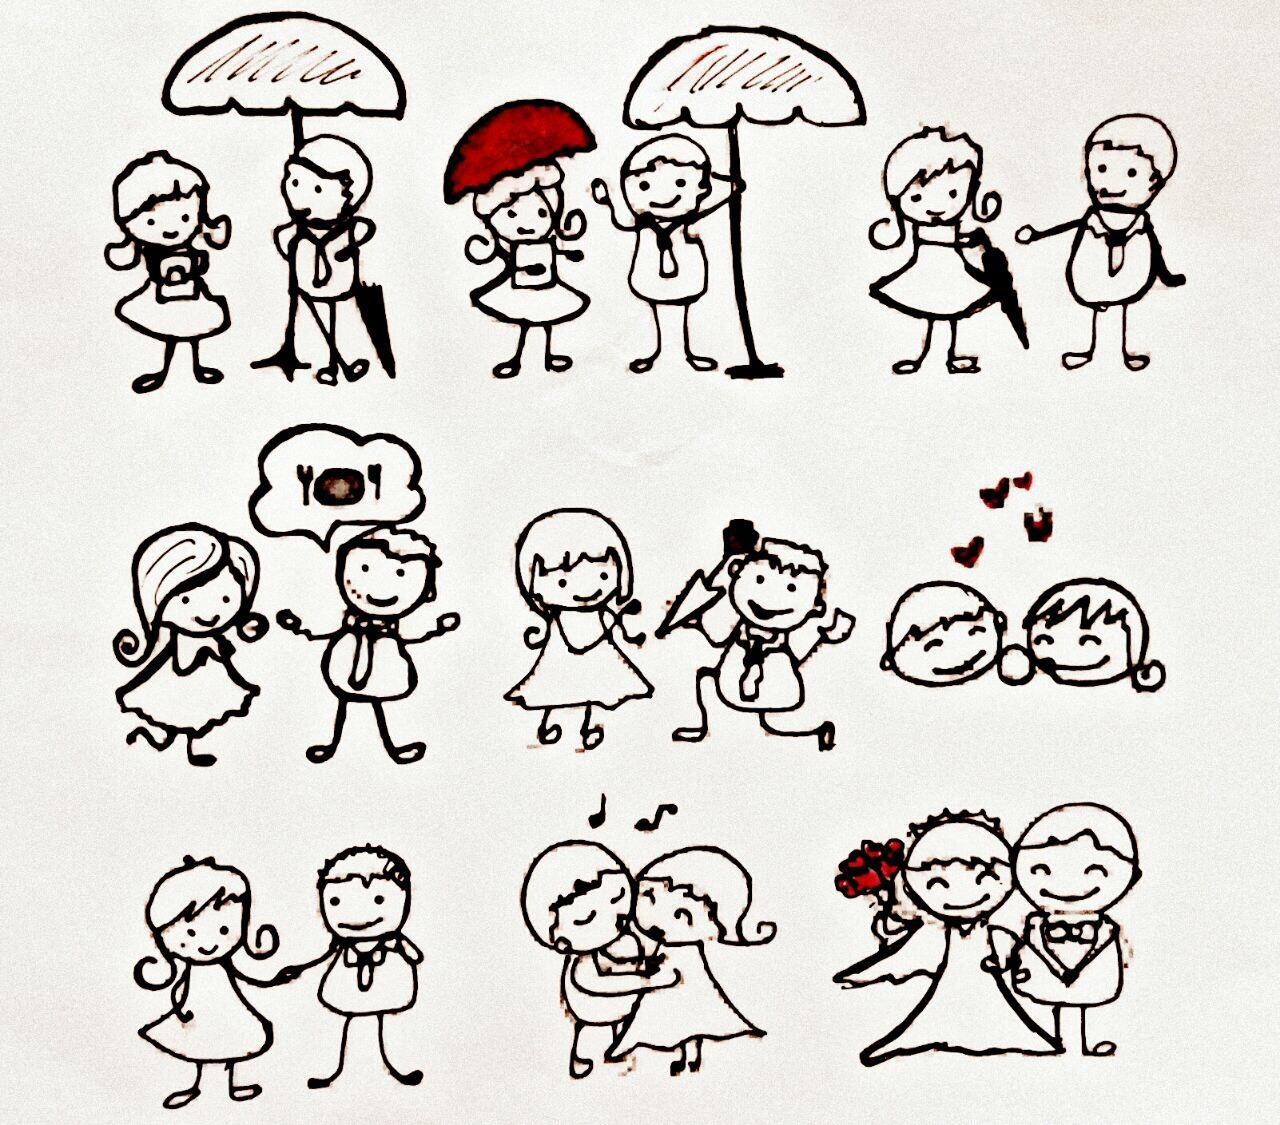 A Valentine song  I saw you standing there,  The same way as you did, With smiling lips here, And yours as well bid.   Sharing my umbrella with you, In a small little Hi, And then the talk goes to a few, Words, and ends in a dinner, sigh!  I bring you roses, and then a ring, Proposing my love to your heart, And in unending glee you spring, Waltzing on our romance tart.  With all the deeds and happy feet, We're married for years long, Yet the essence is like a new treat, Each day is our Valentine song.  -written by Adelene Coelho Drawing by Amelia Joseph